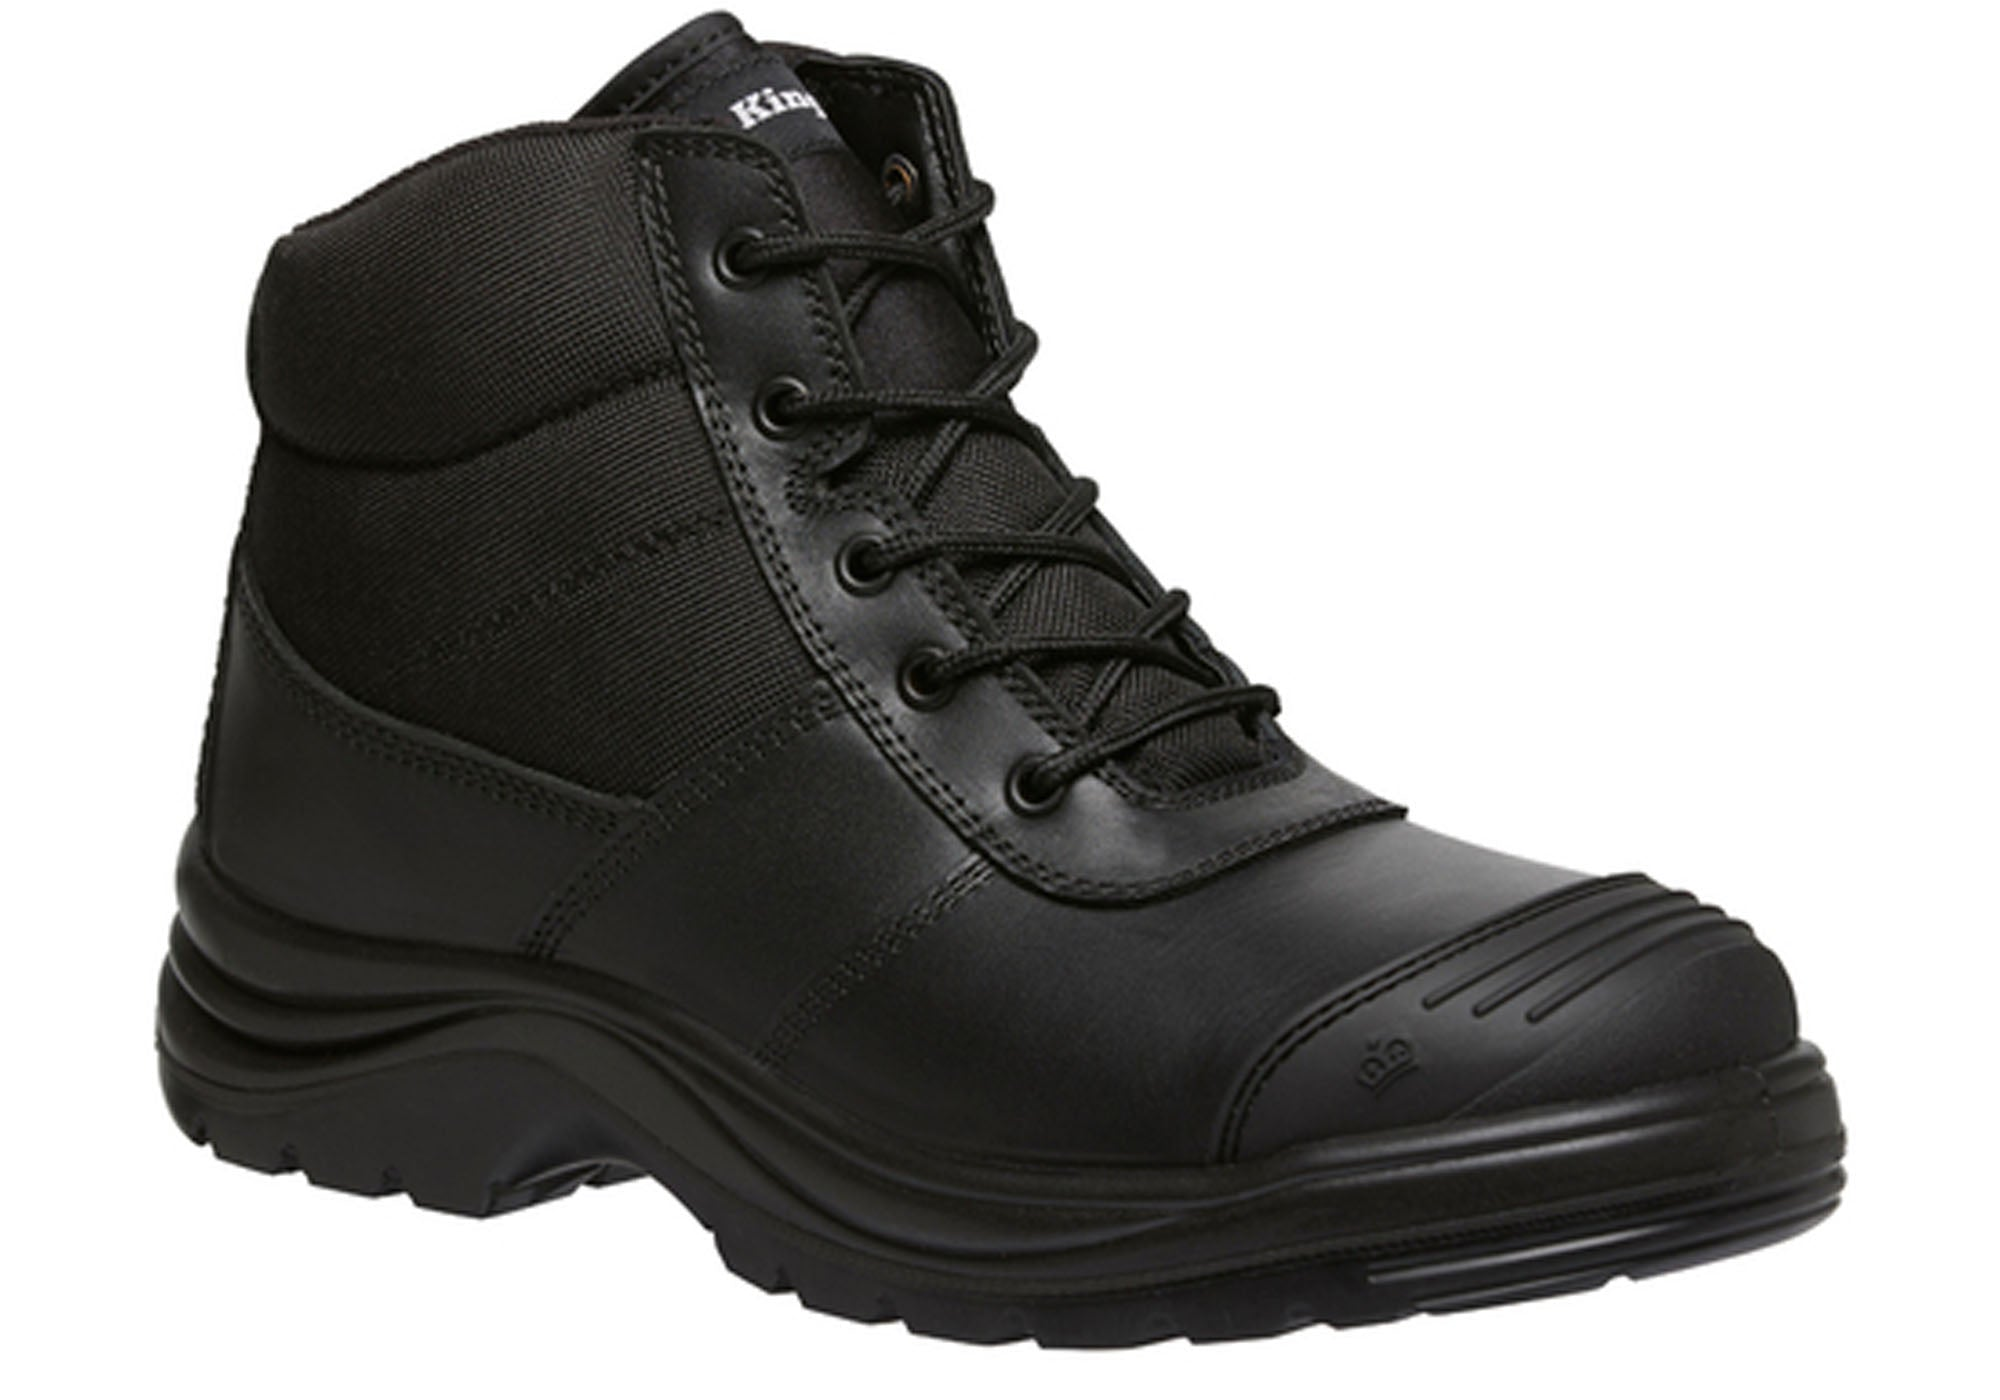 tradie brand work boots